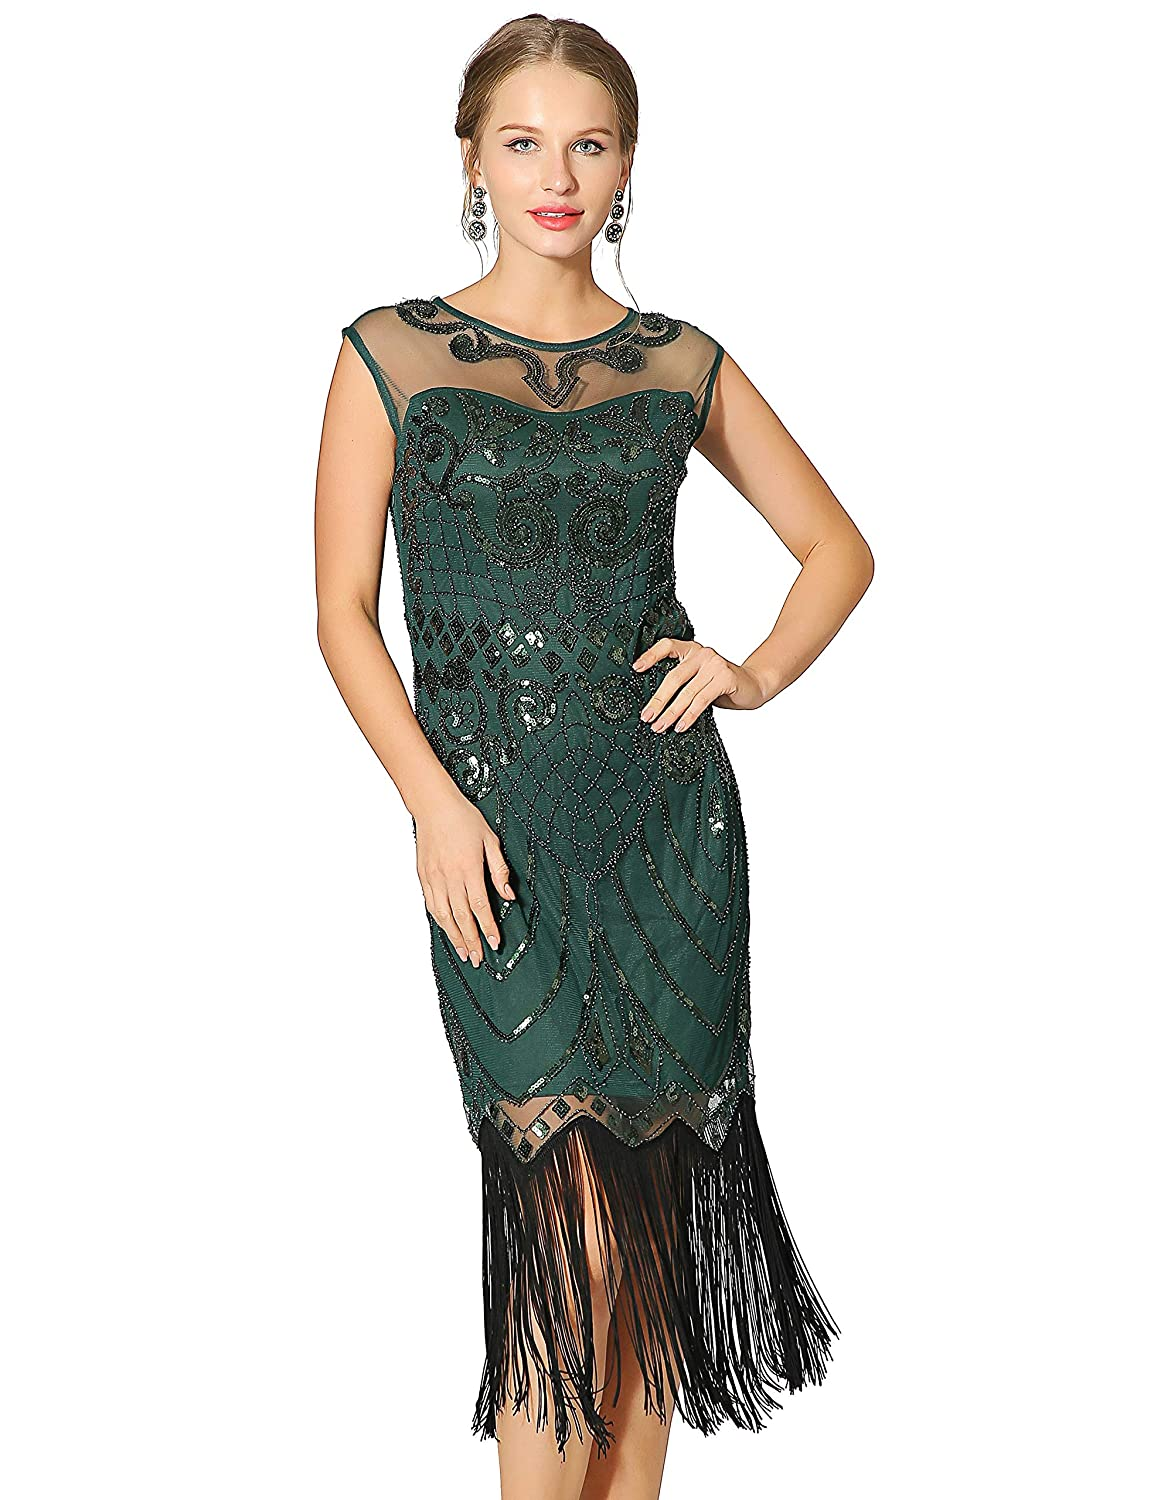 Green Metme Women's Cocktail Flapper Dress 1920s Great Gatsby Beads Art Deco Fringed Dress